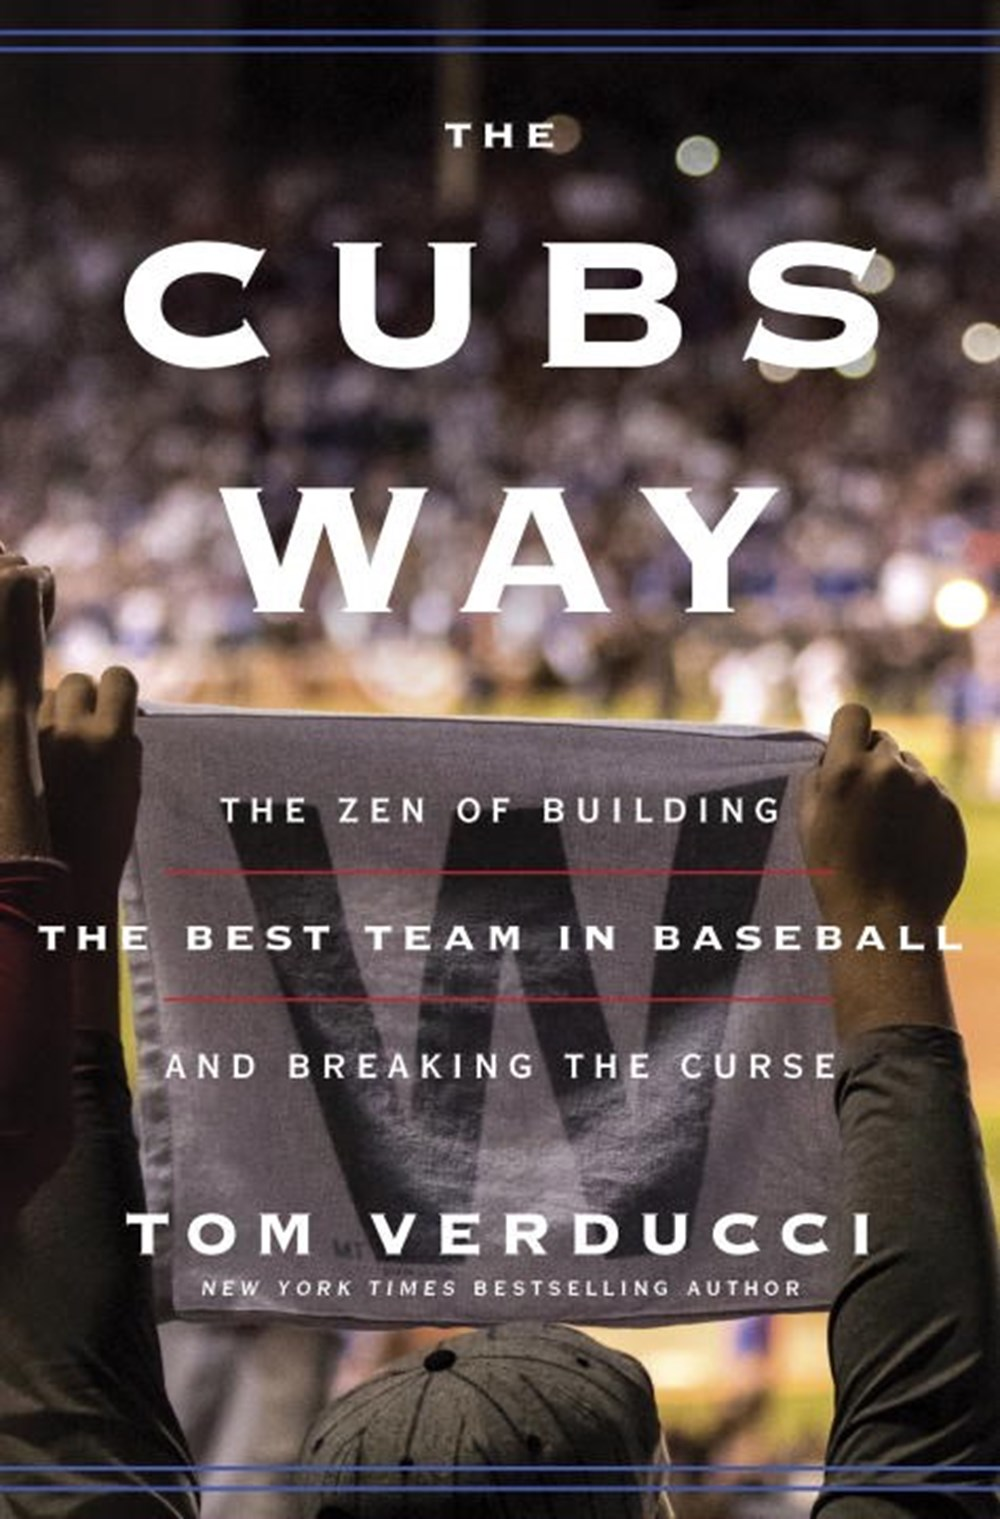 Cubs Way The Zen of Building the Best Team in Baseball and Breaking the Curse